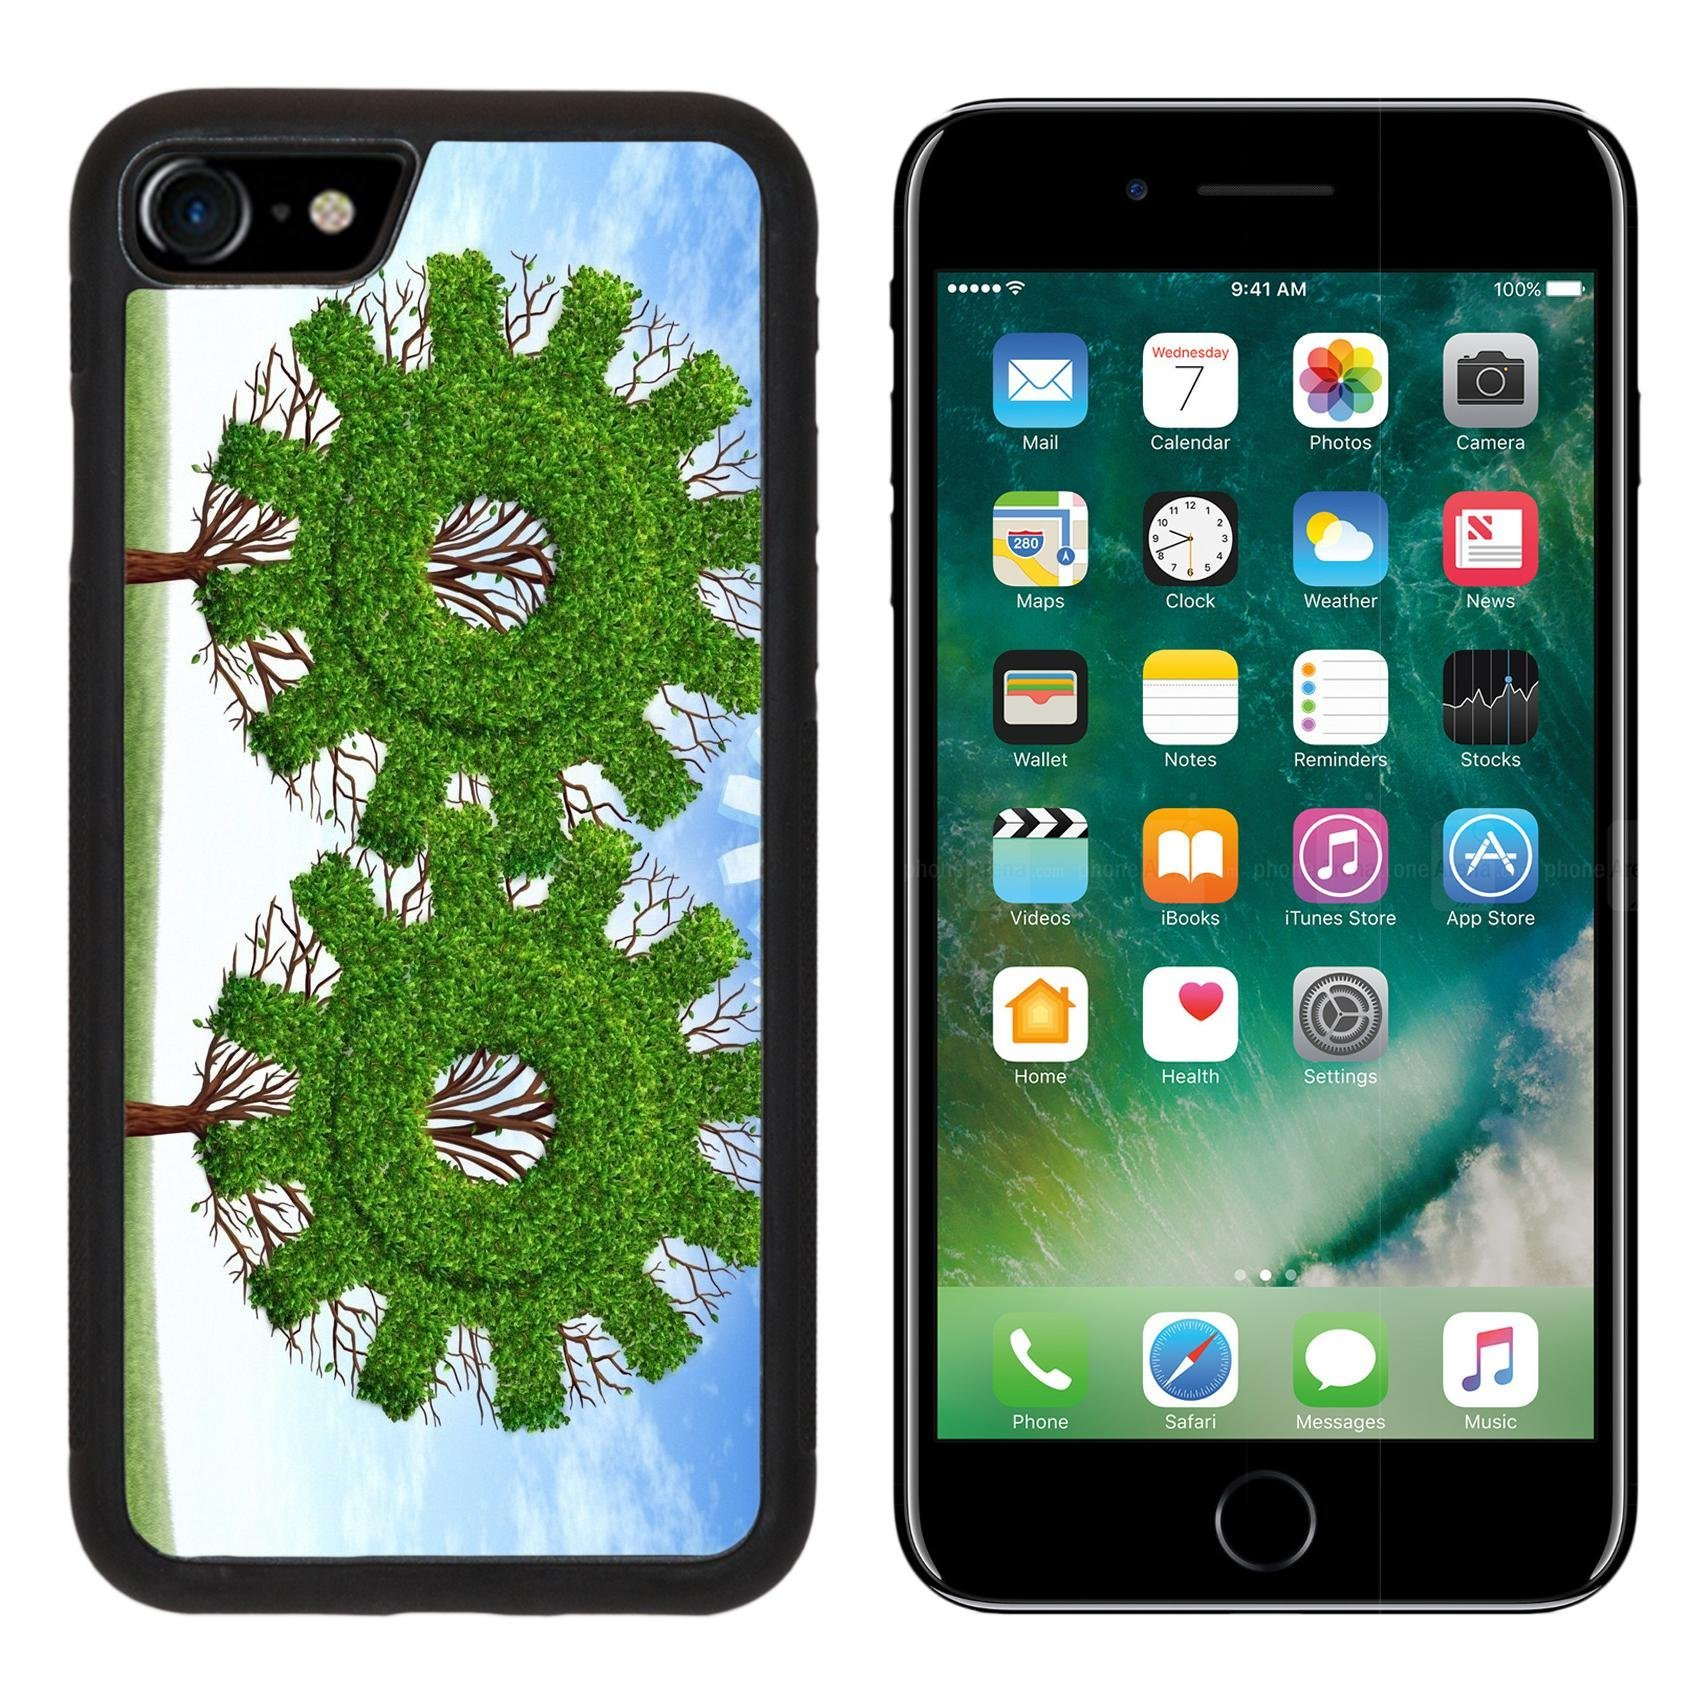 Liili iPhone 7 Case and iPhone 8 Case Silicone Bumper Shockproof Anti-Scratch Resistant Tempered Glass Hard Cover Cloud computing growth and the future of virtual storage and internet based remote de by Liili